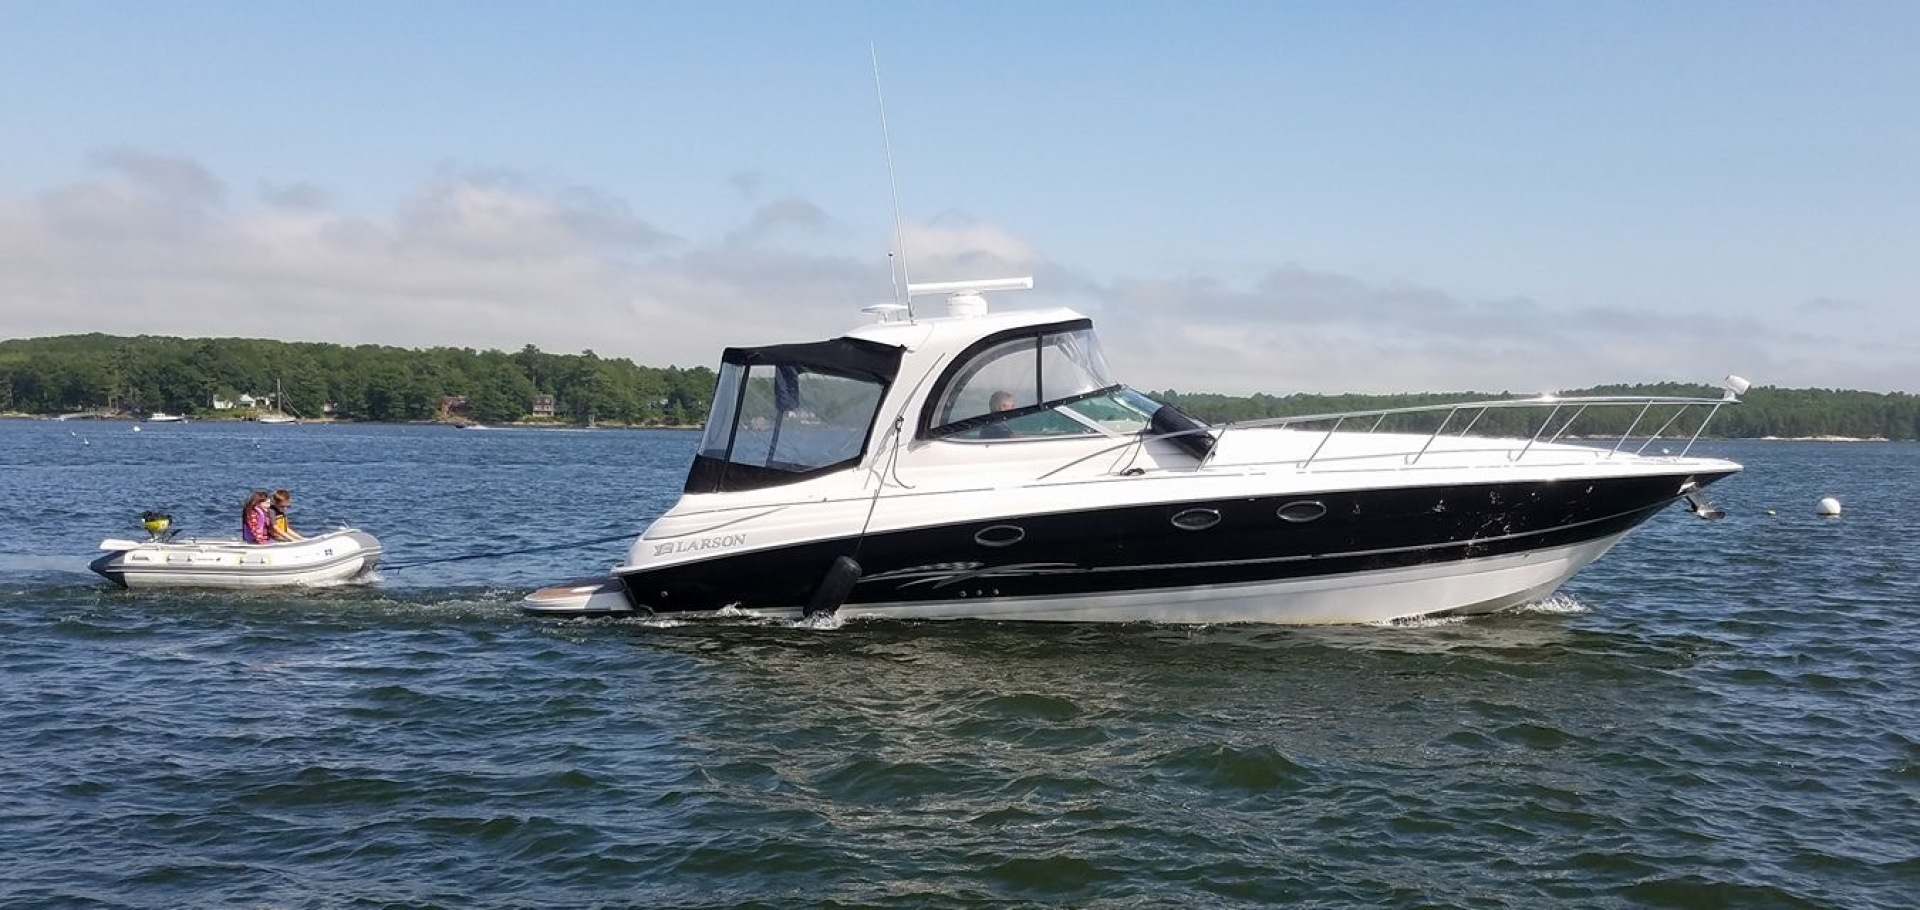 Larson-Cabrio 370 2007-My Tye XII Wiscasset-Maine-United States-Larson Cabrio 370 And Dinghy-1183511 | Thumbnail